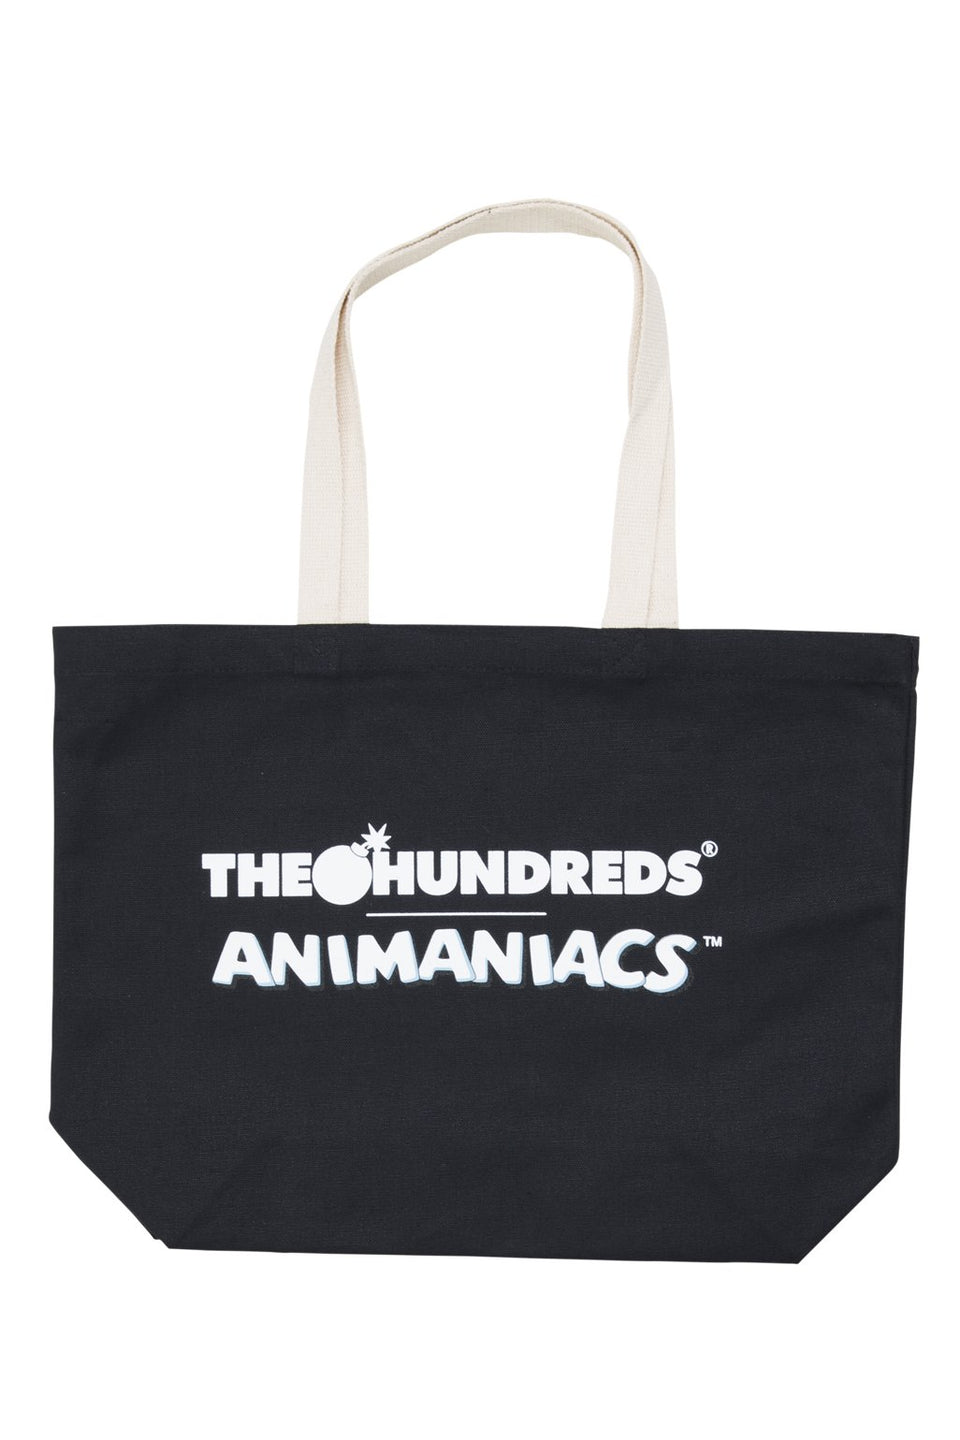 Animaniacs Shield Tote Bag